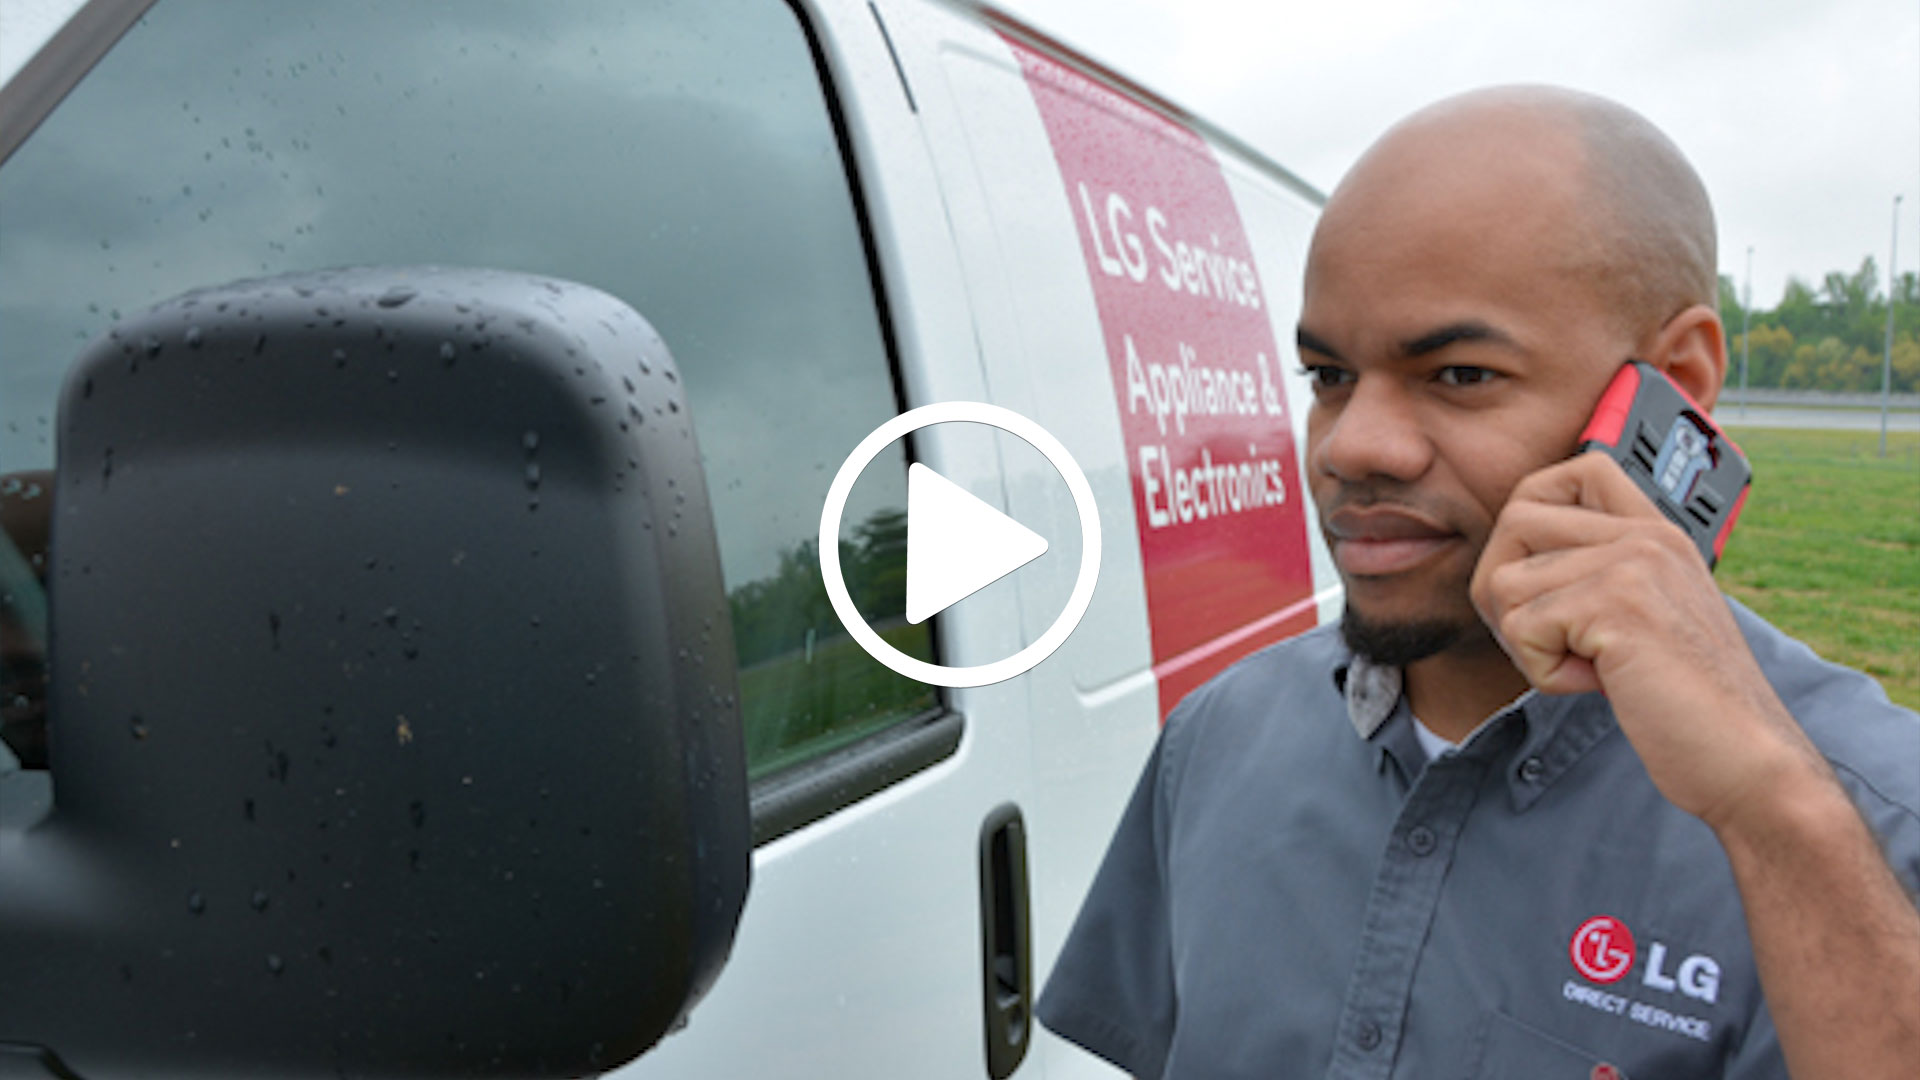 Watch our careers video for available job opening Field Service Technician in Houston, TX